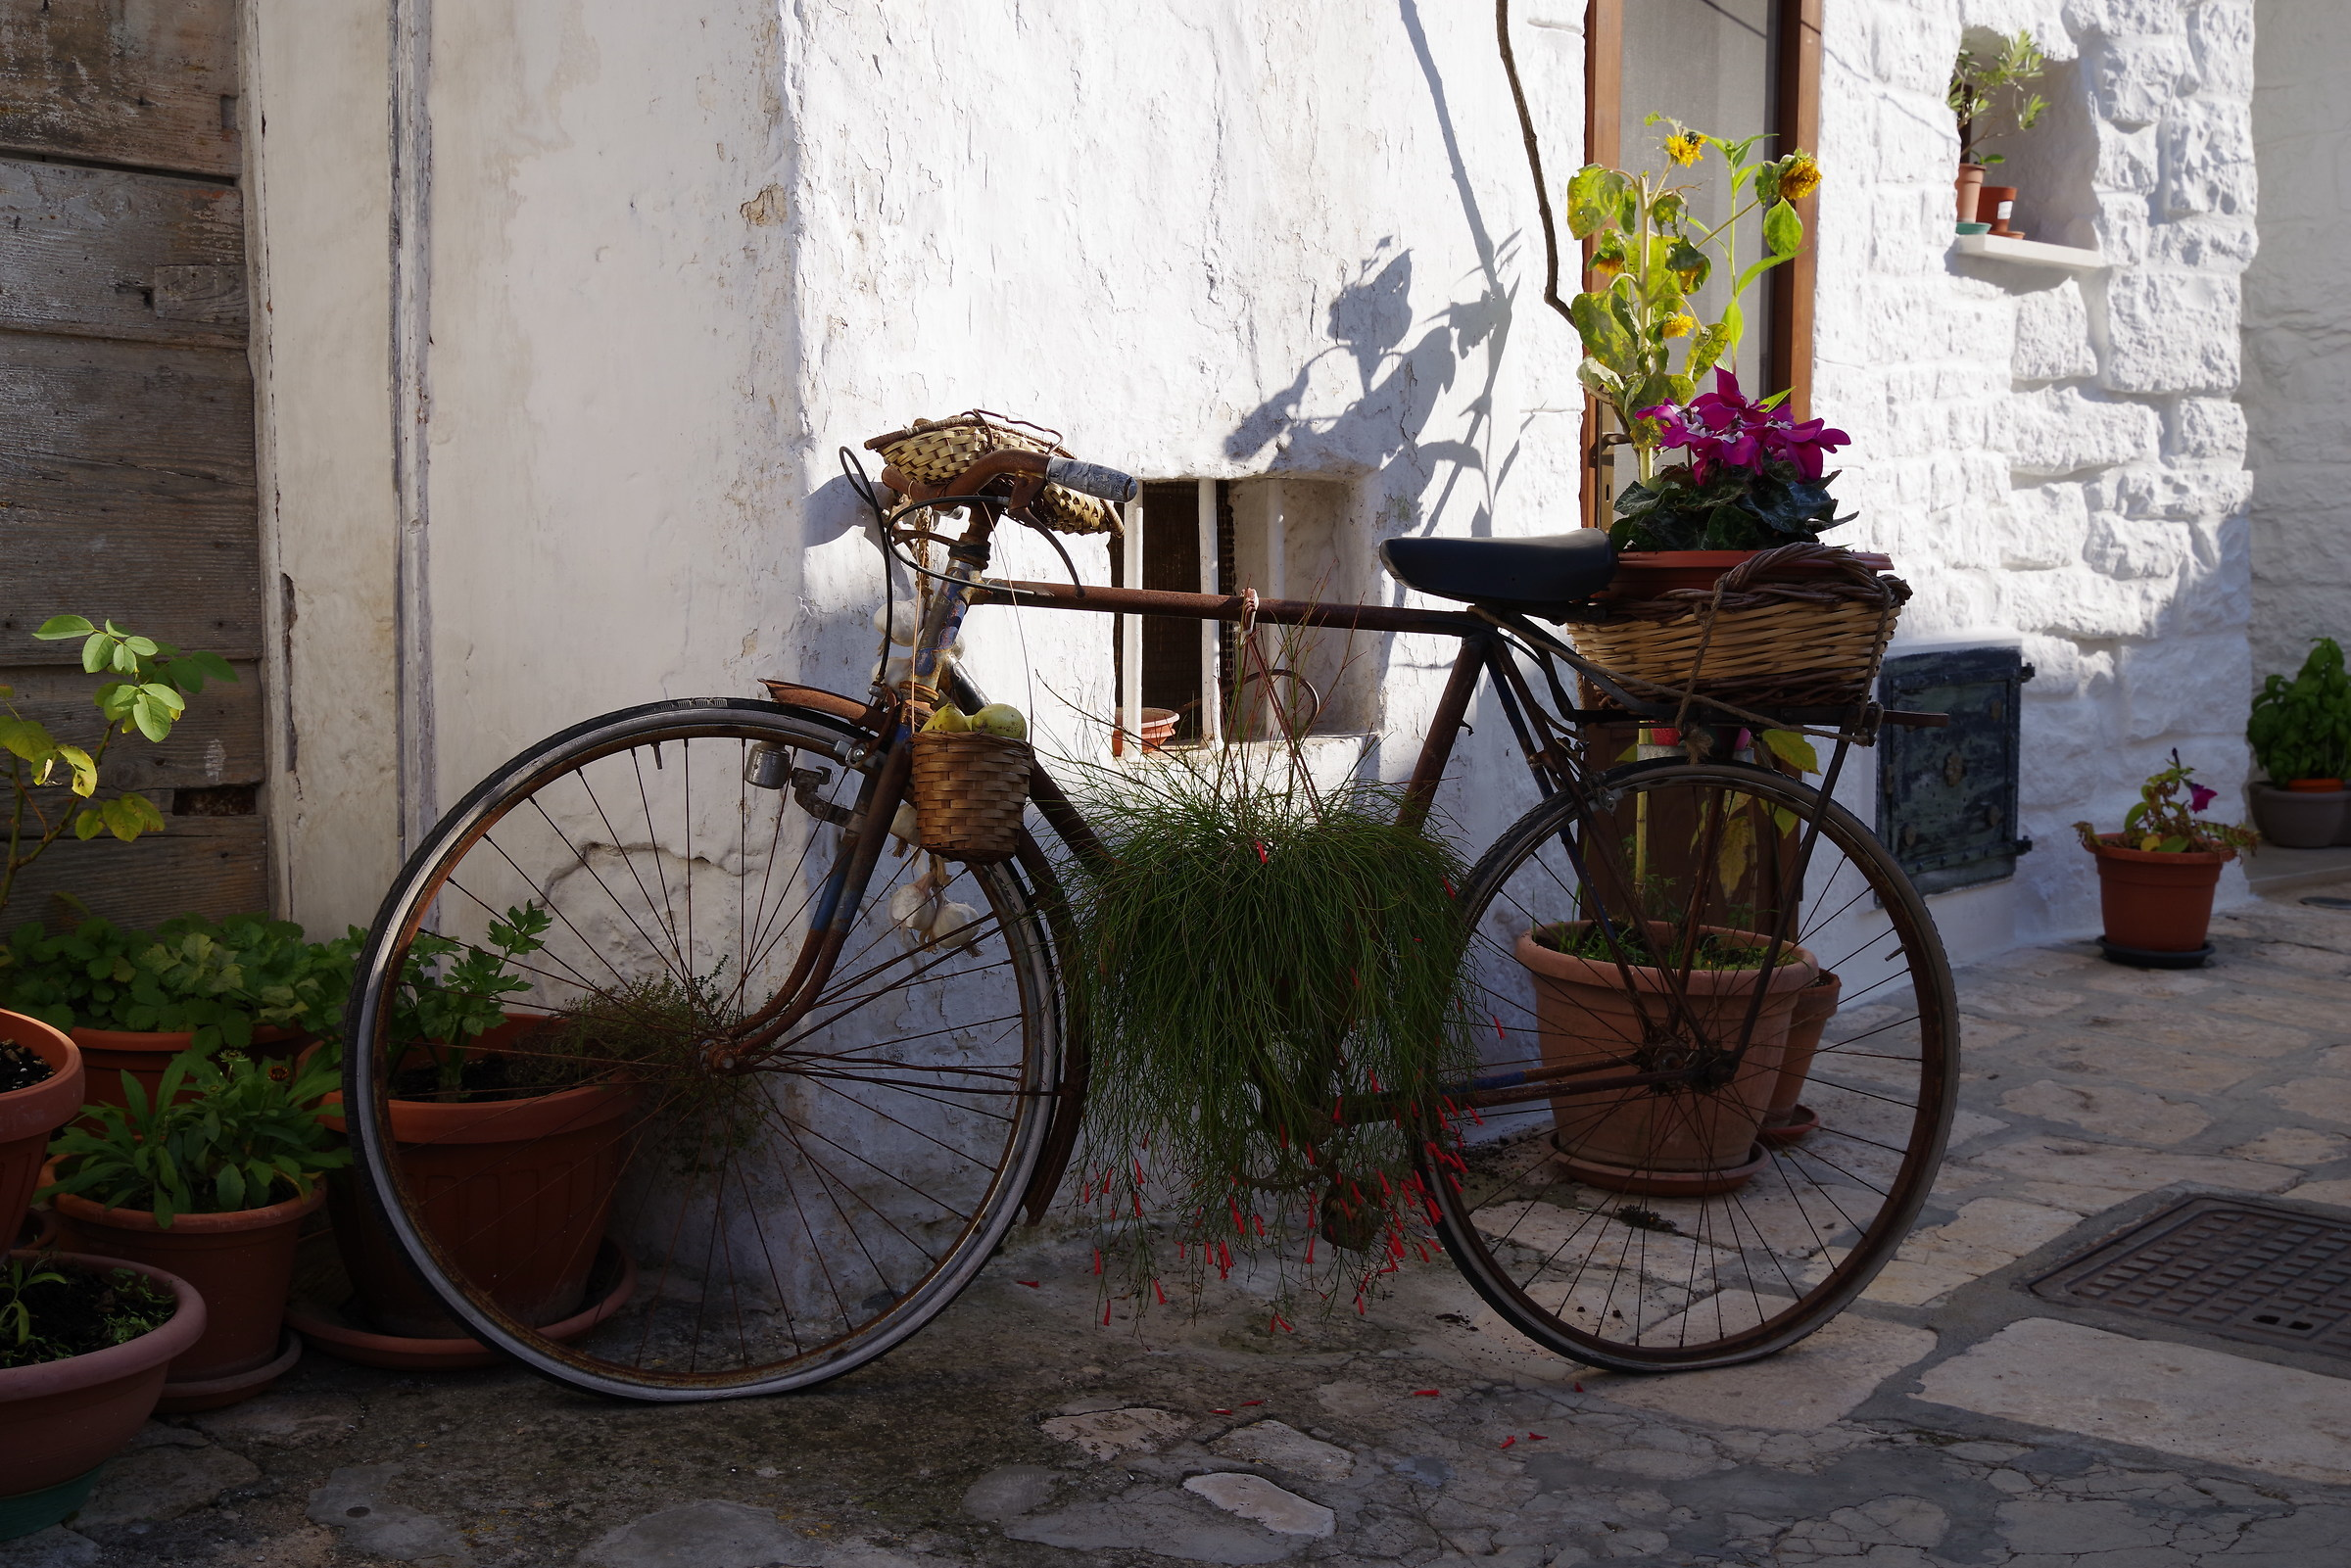 The Floral Bike...